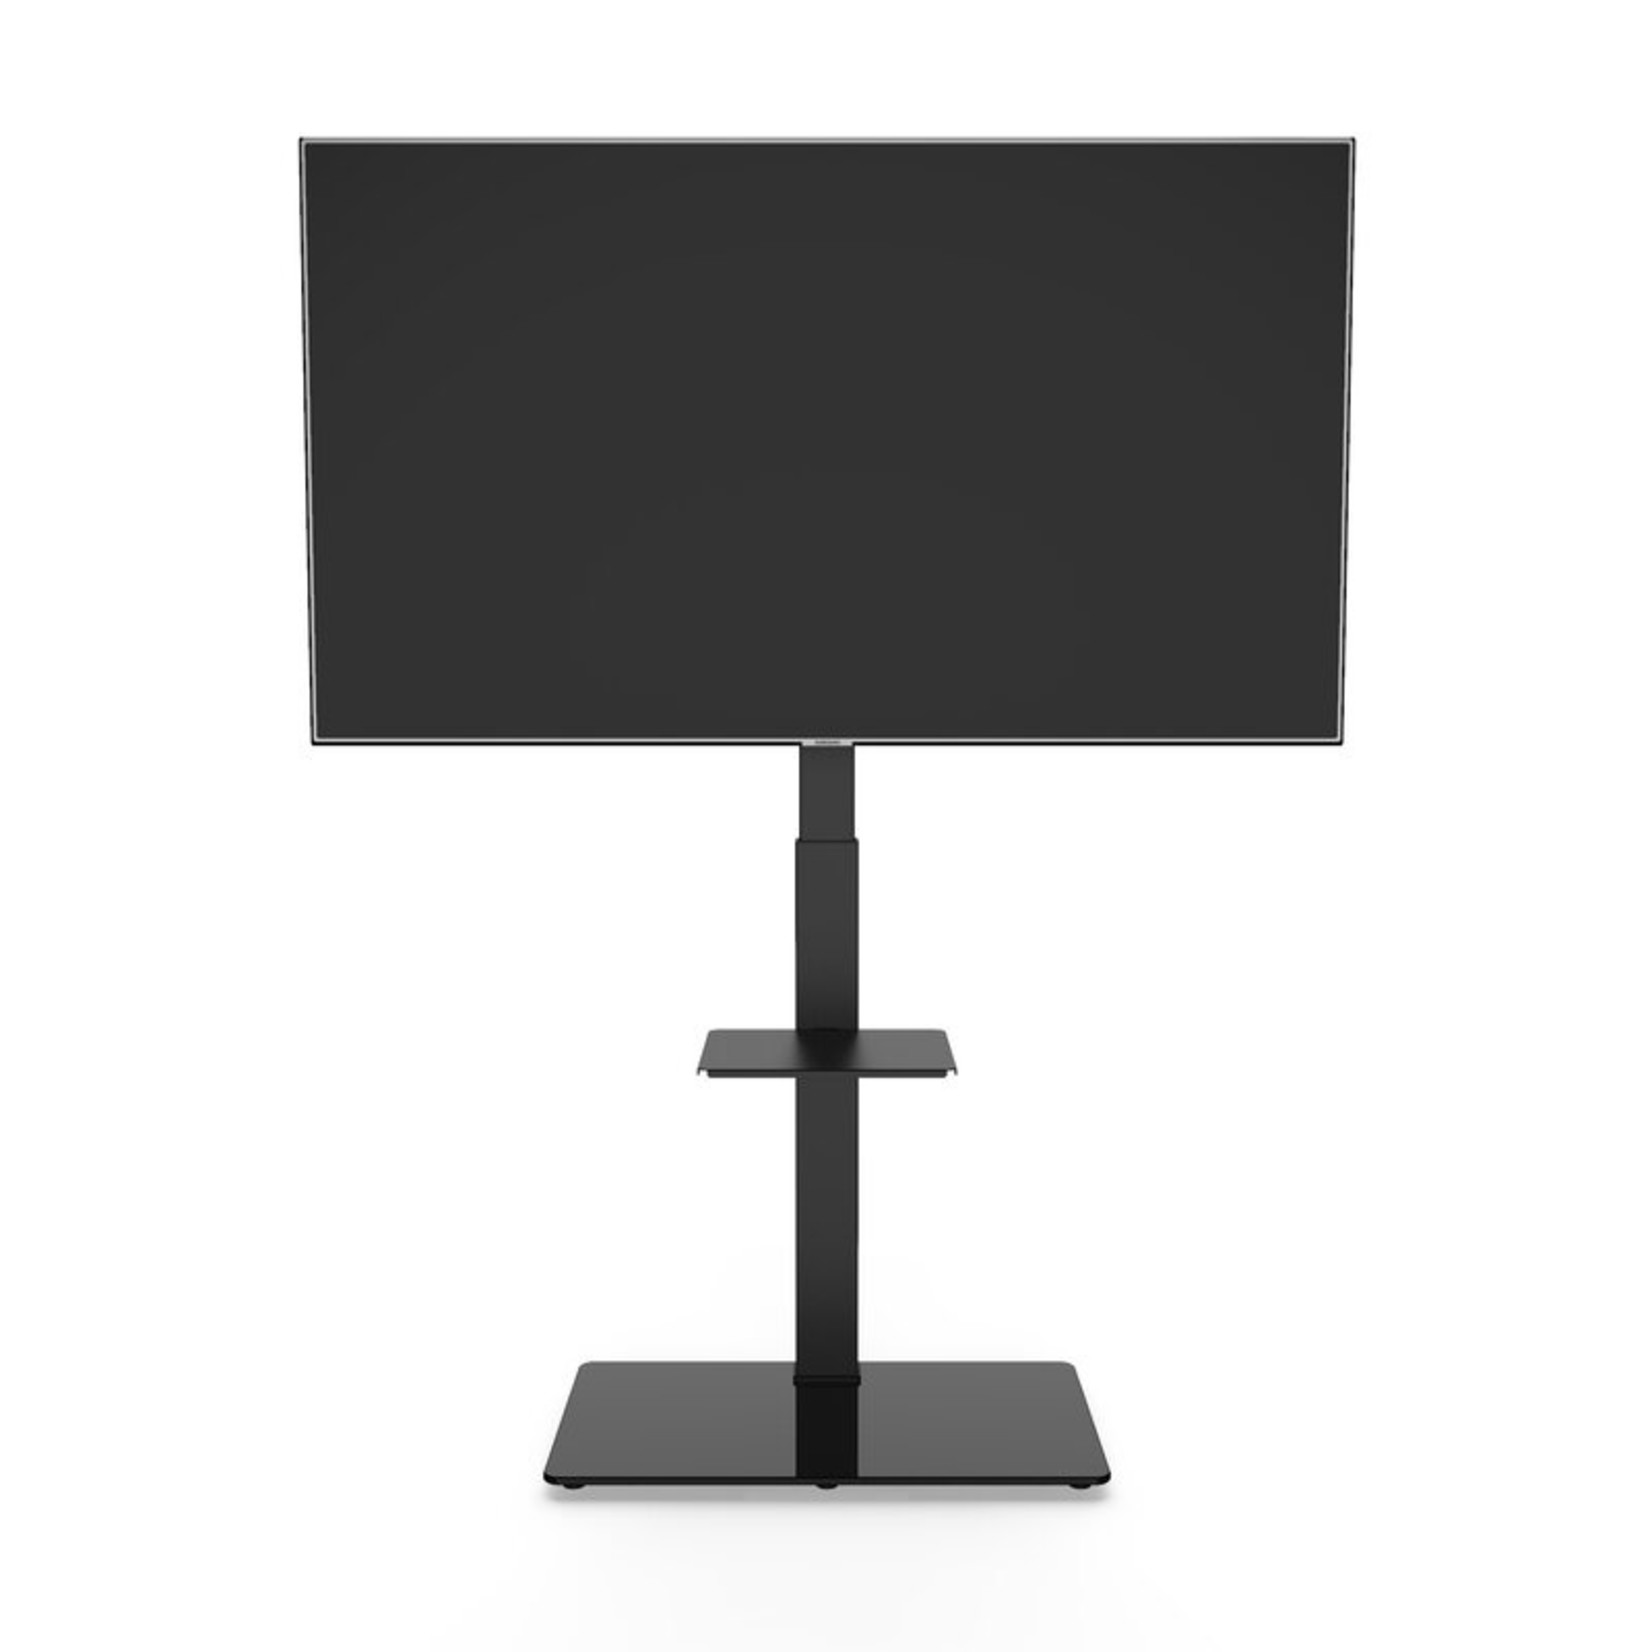 *Black Swivel Floor Stand Mount with Shelving